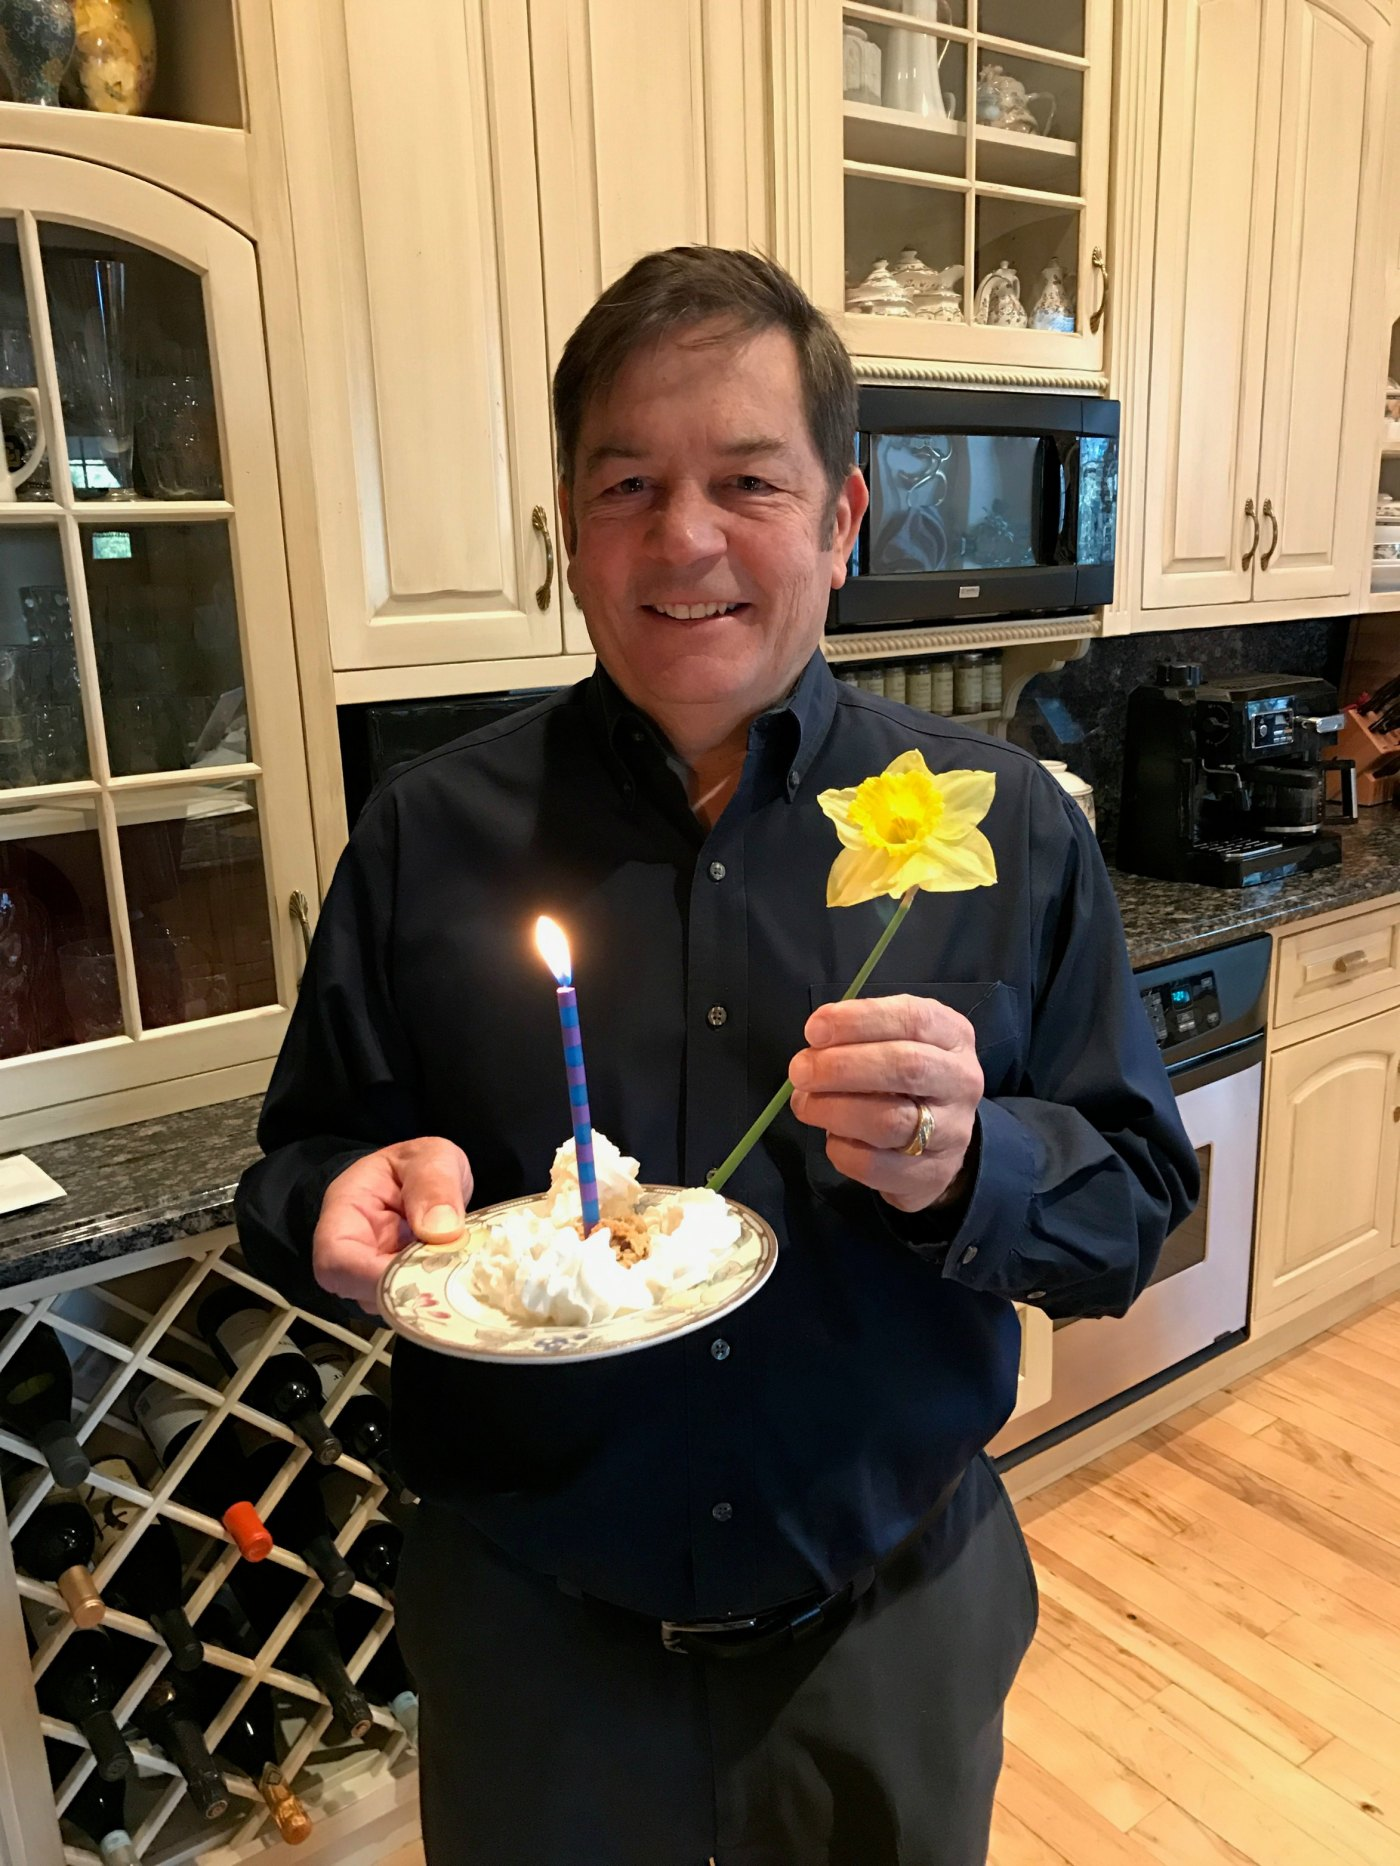 Husband with cake, candle and flower for my birthday